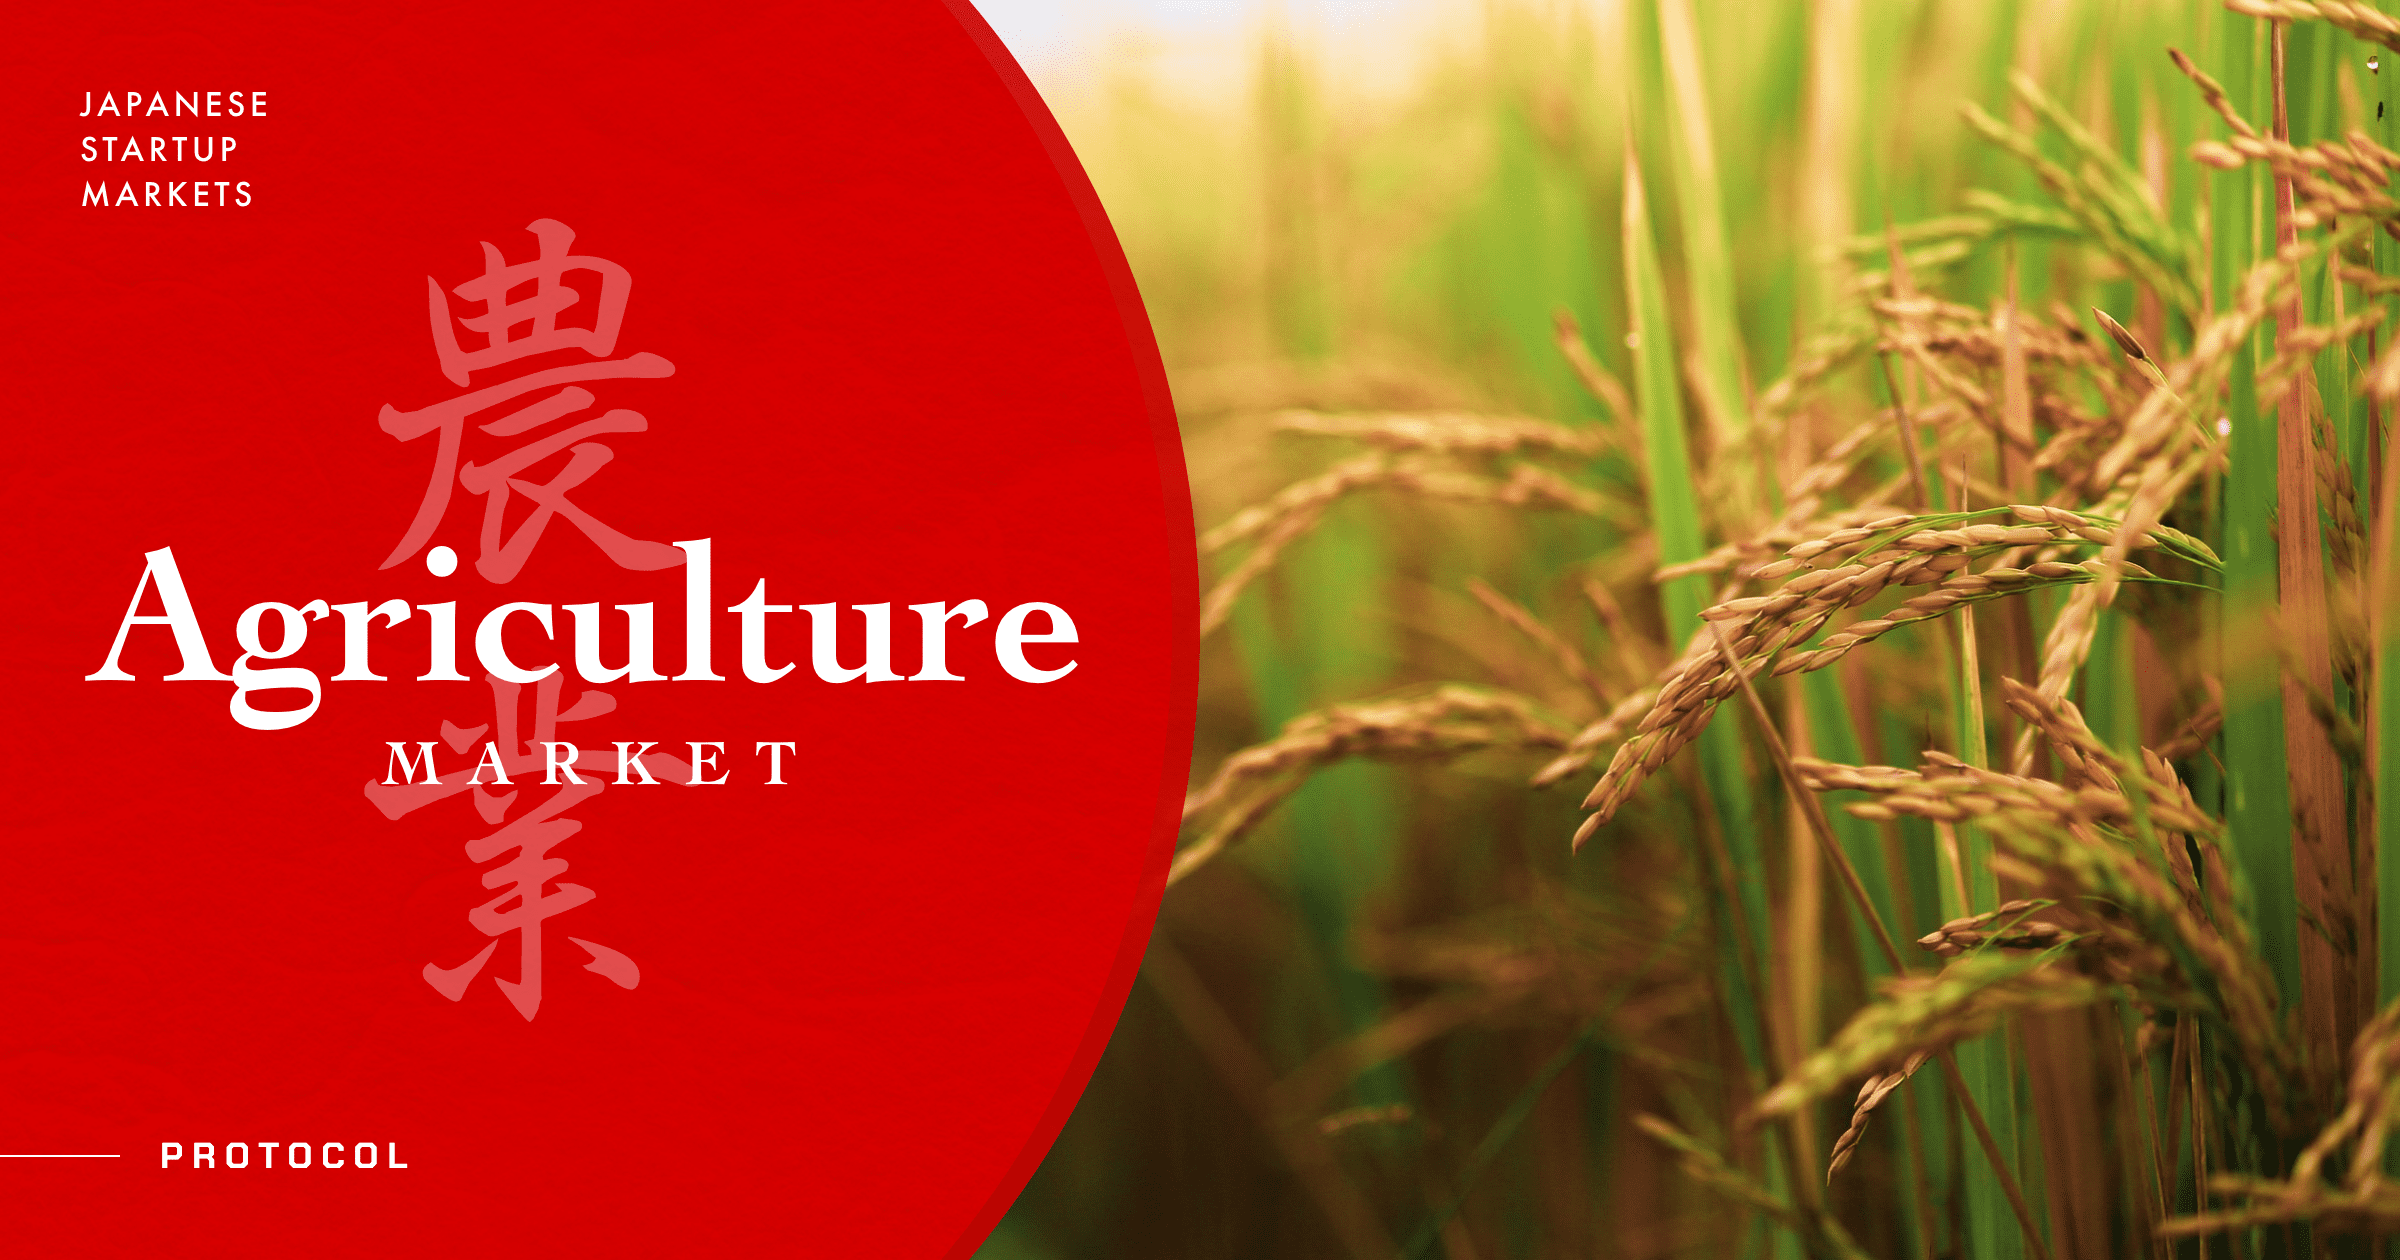 Japanese Startup Markets: Agriculture